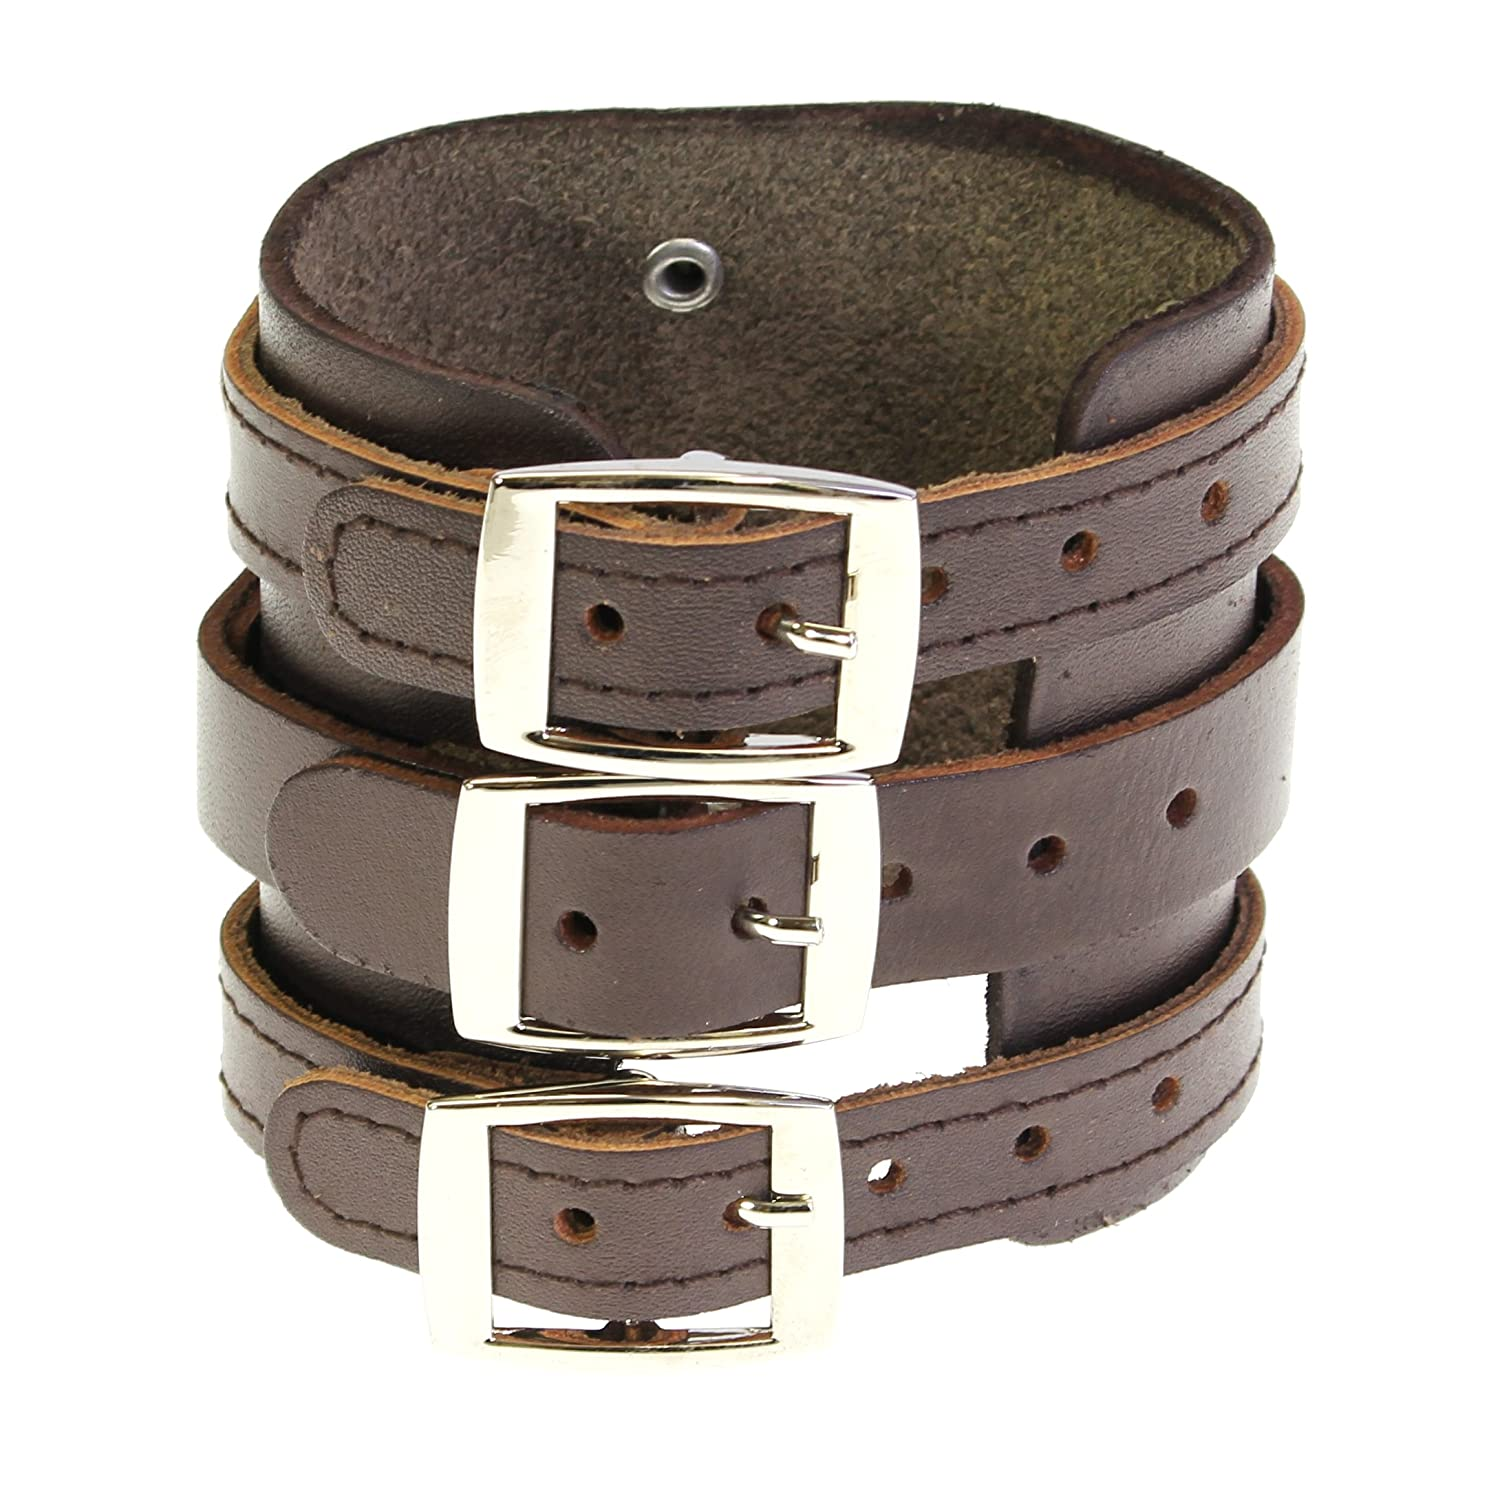 Neptune Giftware Leather Wide Triple Strap Cuff Wrap Gothic Wristband Buckle Fastening